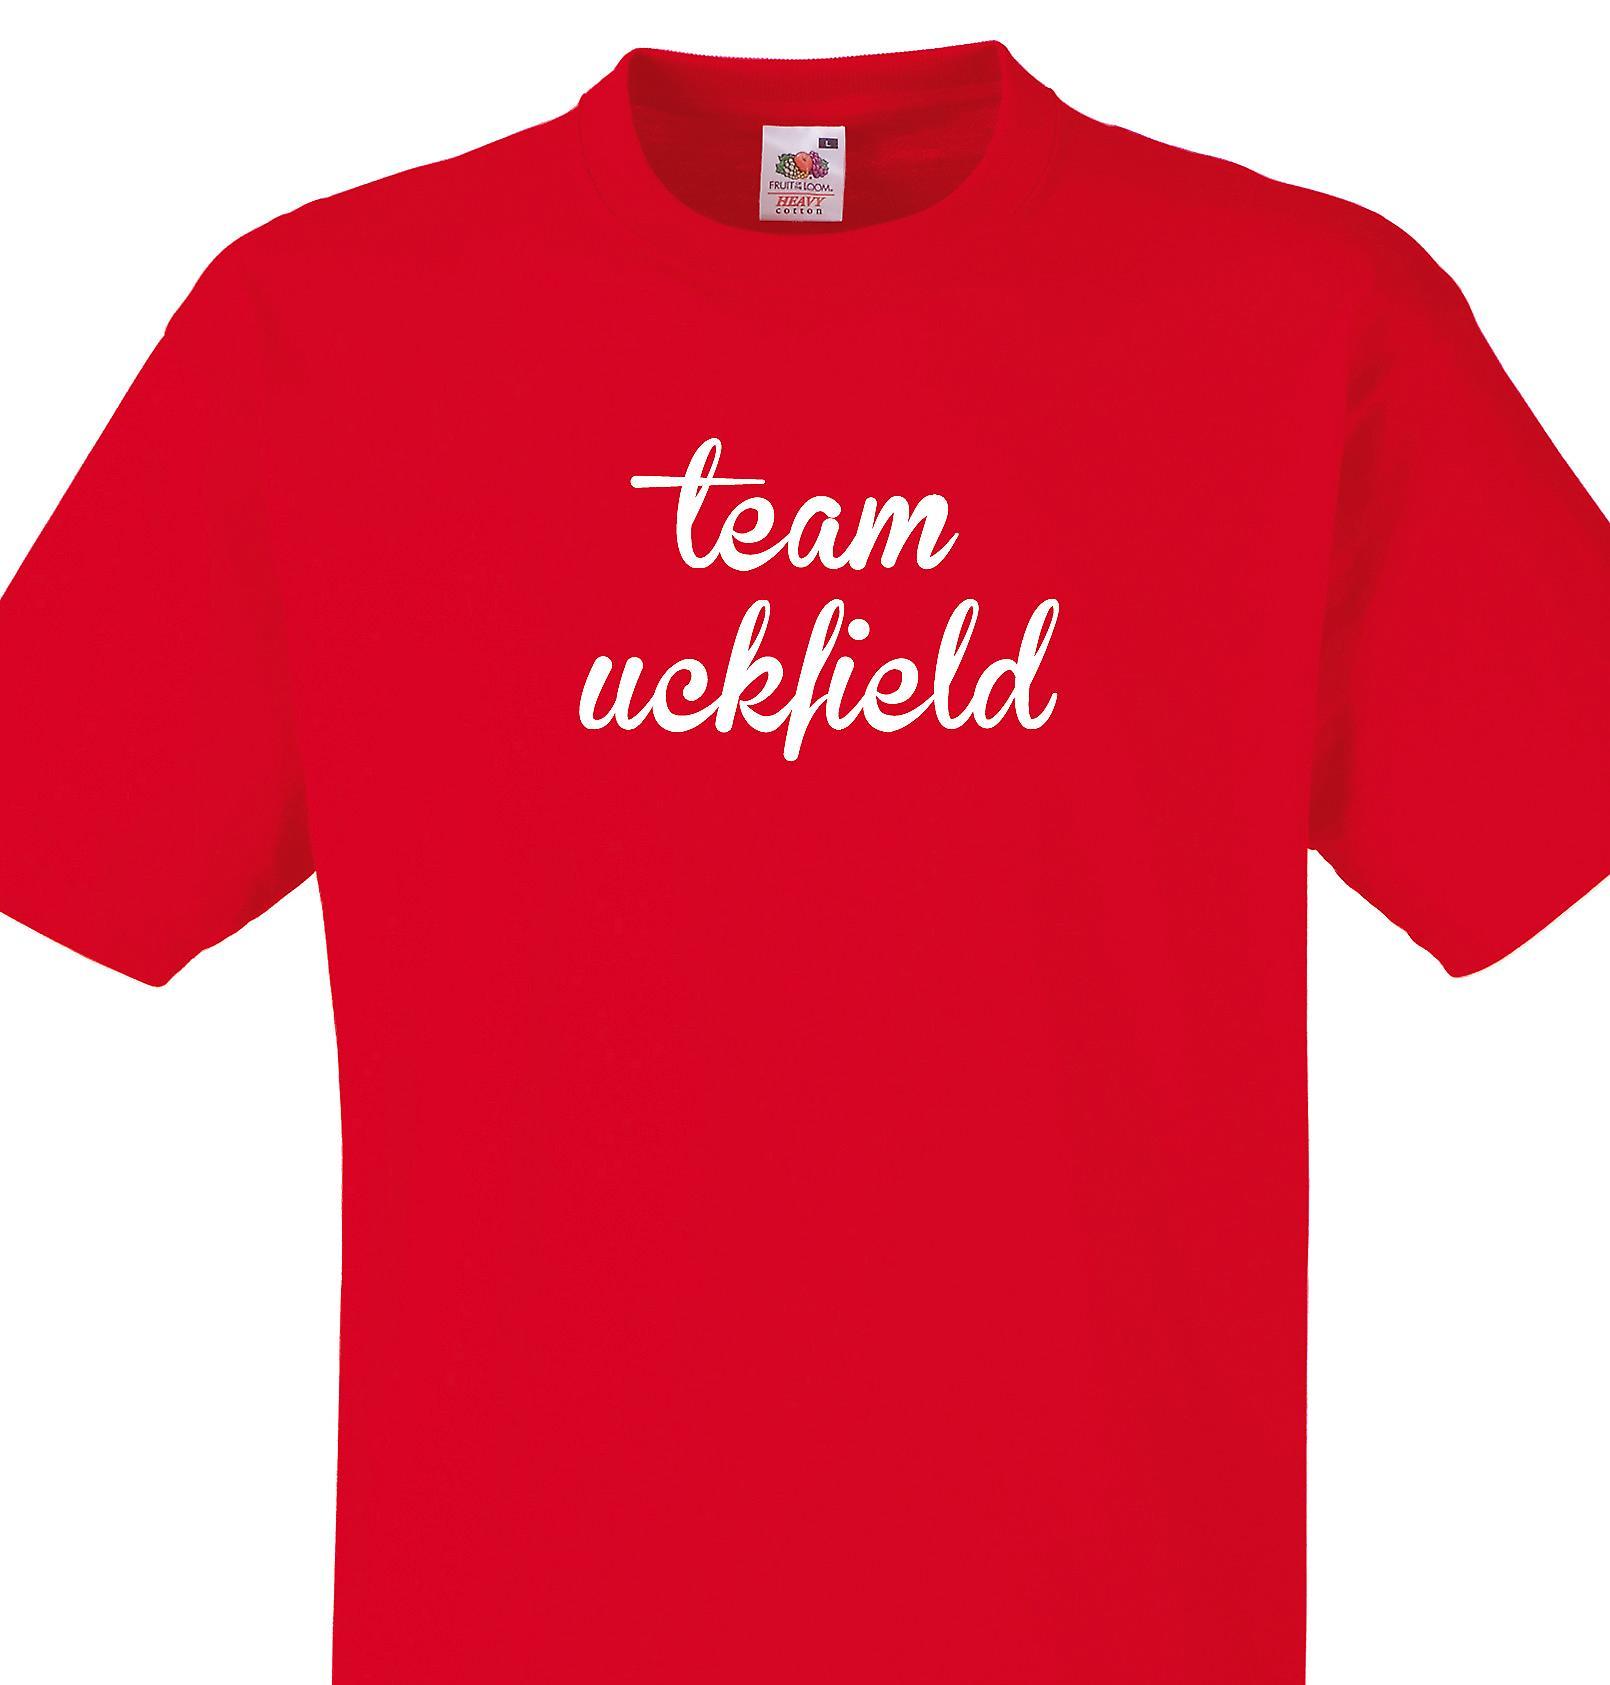 Team Uckfield Red T shirt